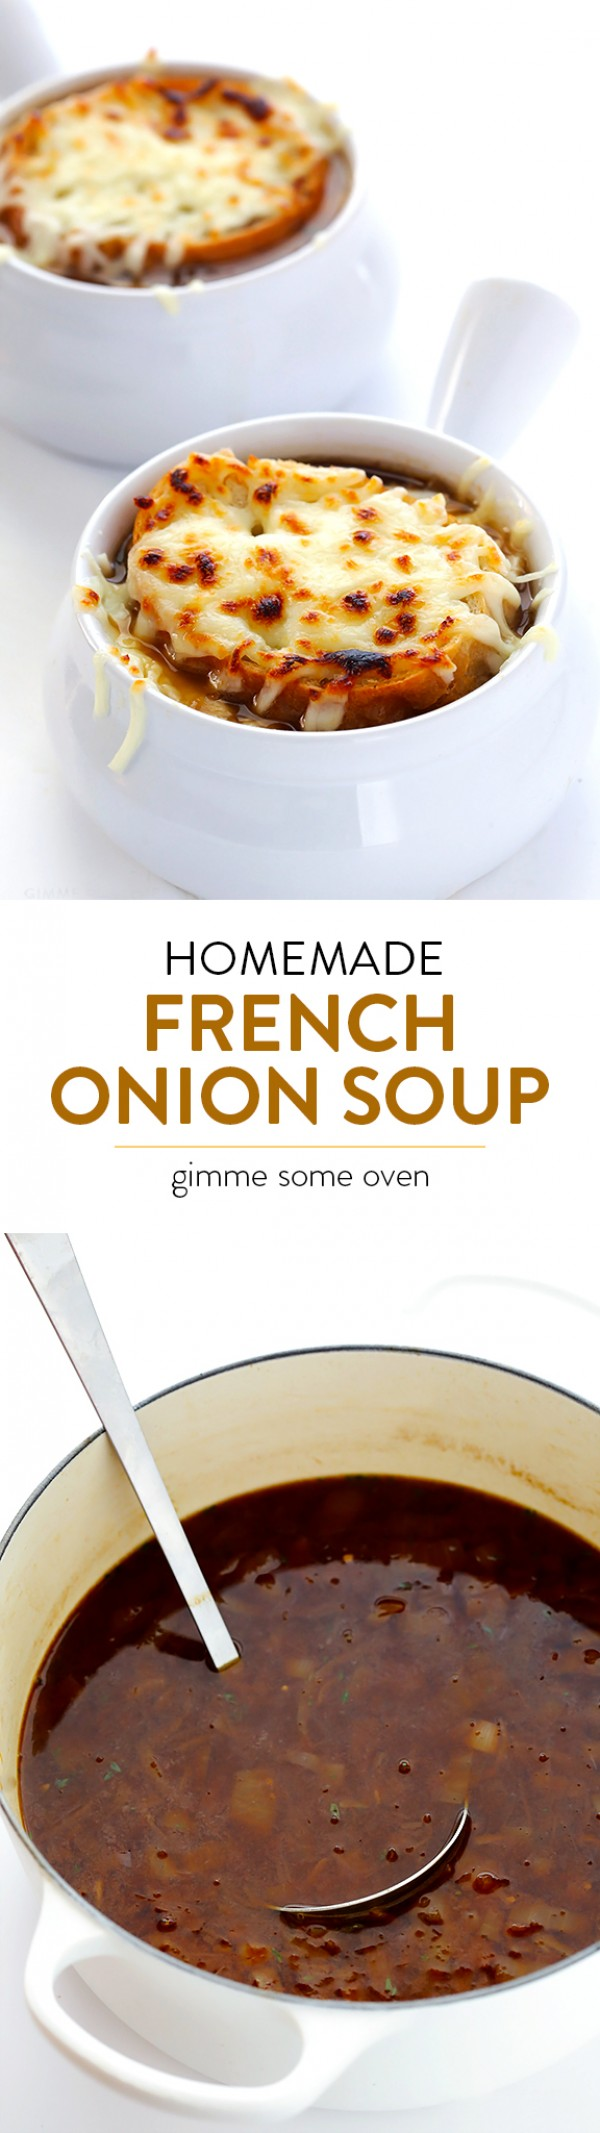 Get the recipe Homemade French Onion Soup @recipes_to_go